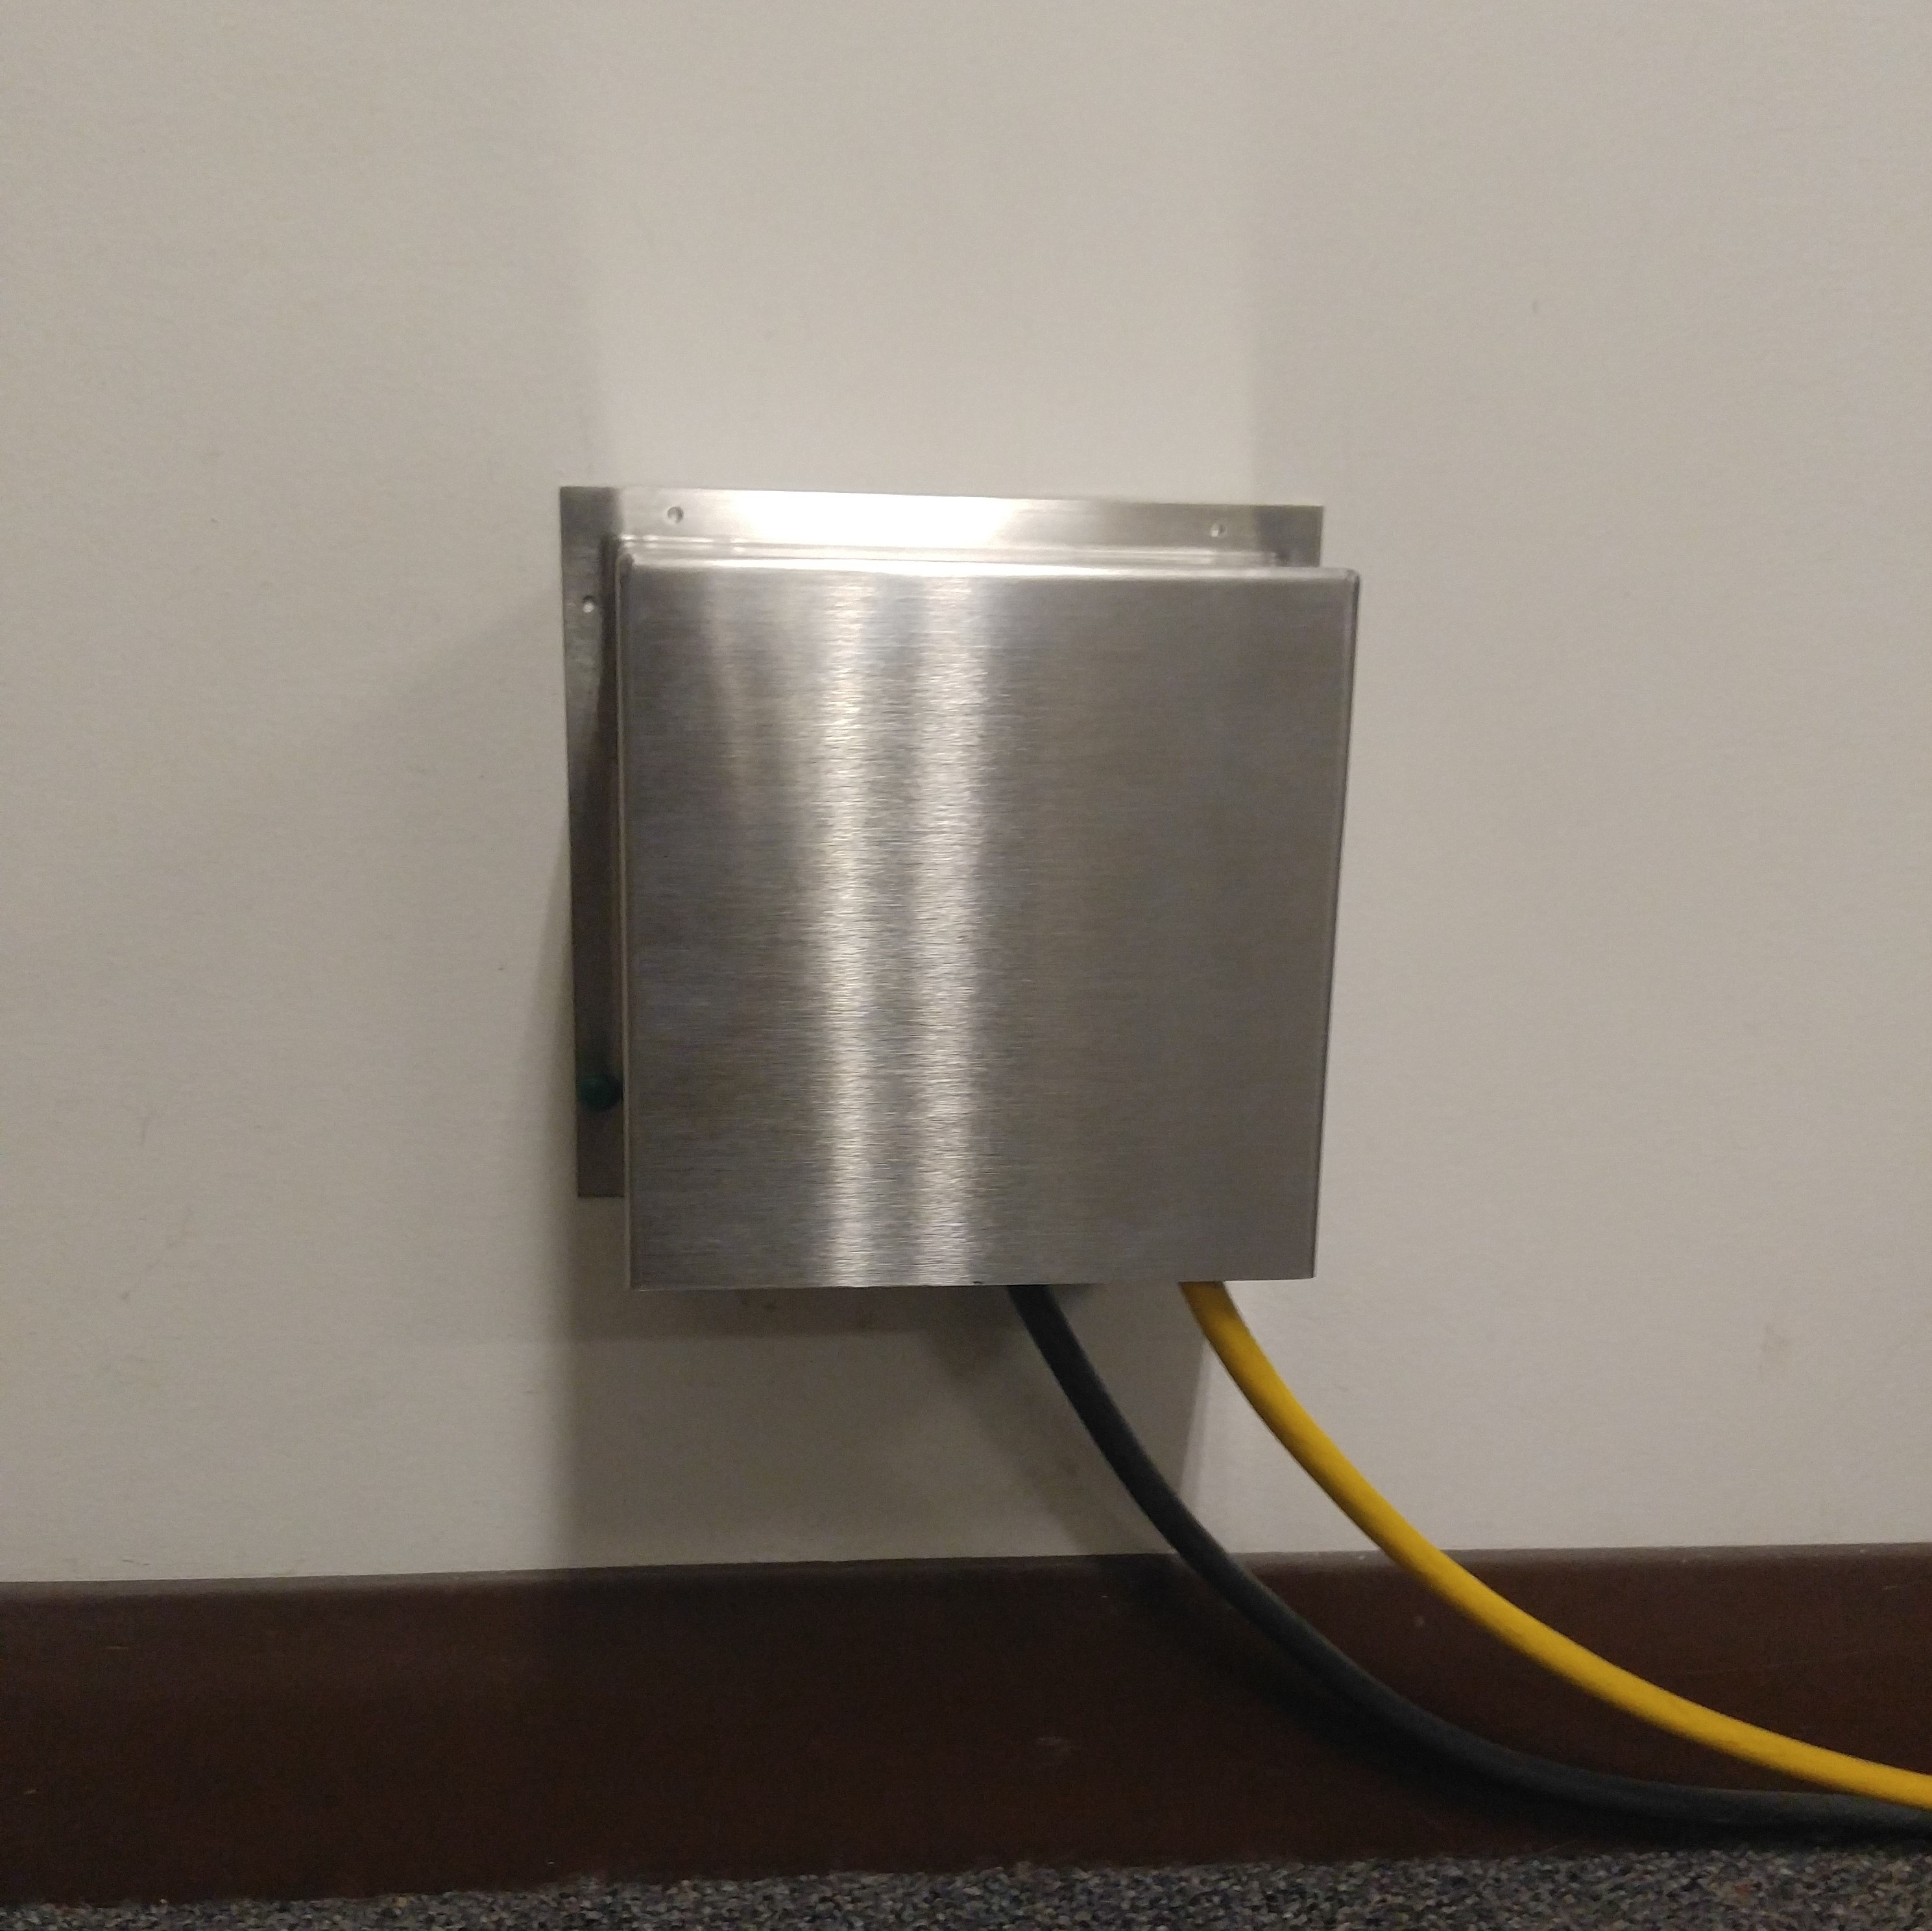 Fixed Shielded Electrical Box Cover Shroud